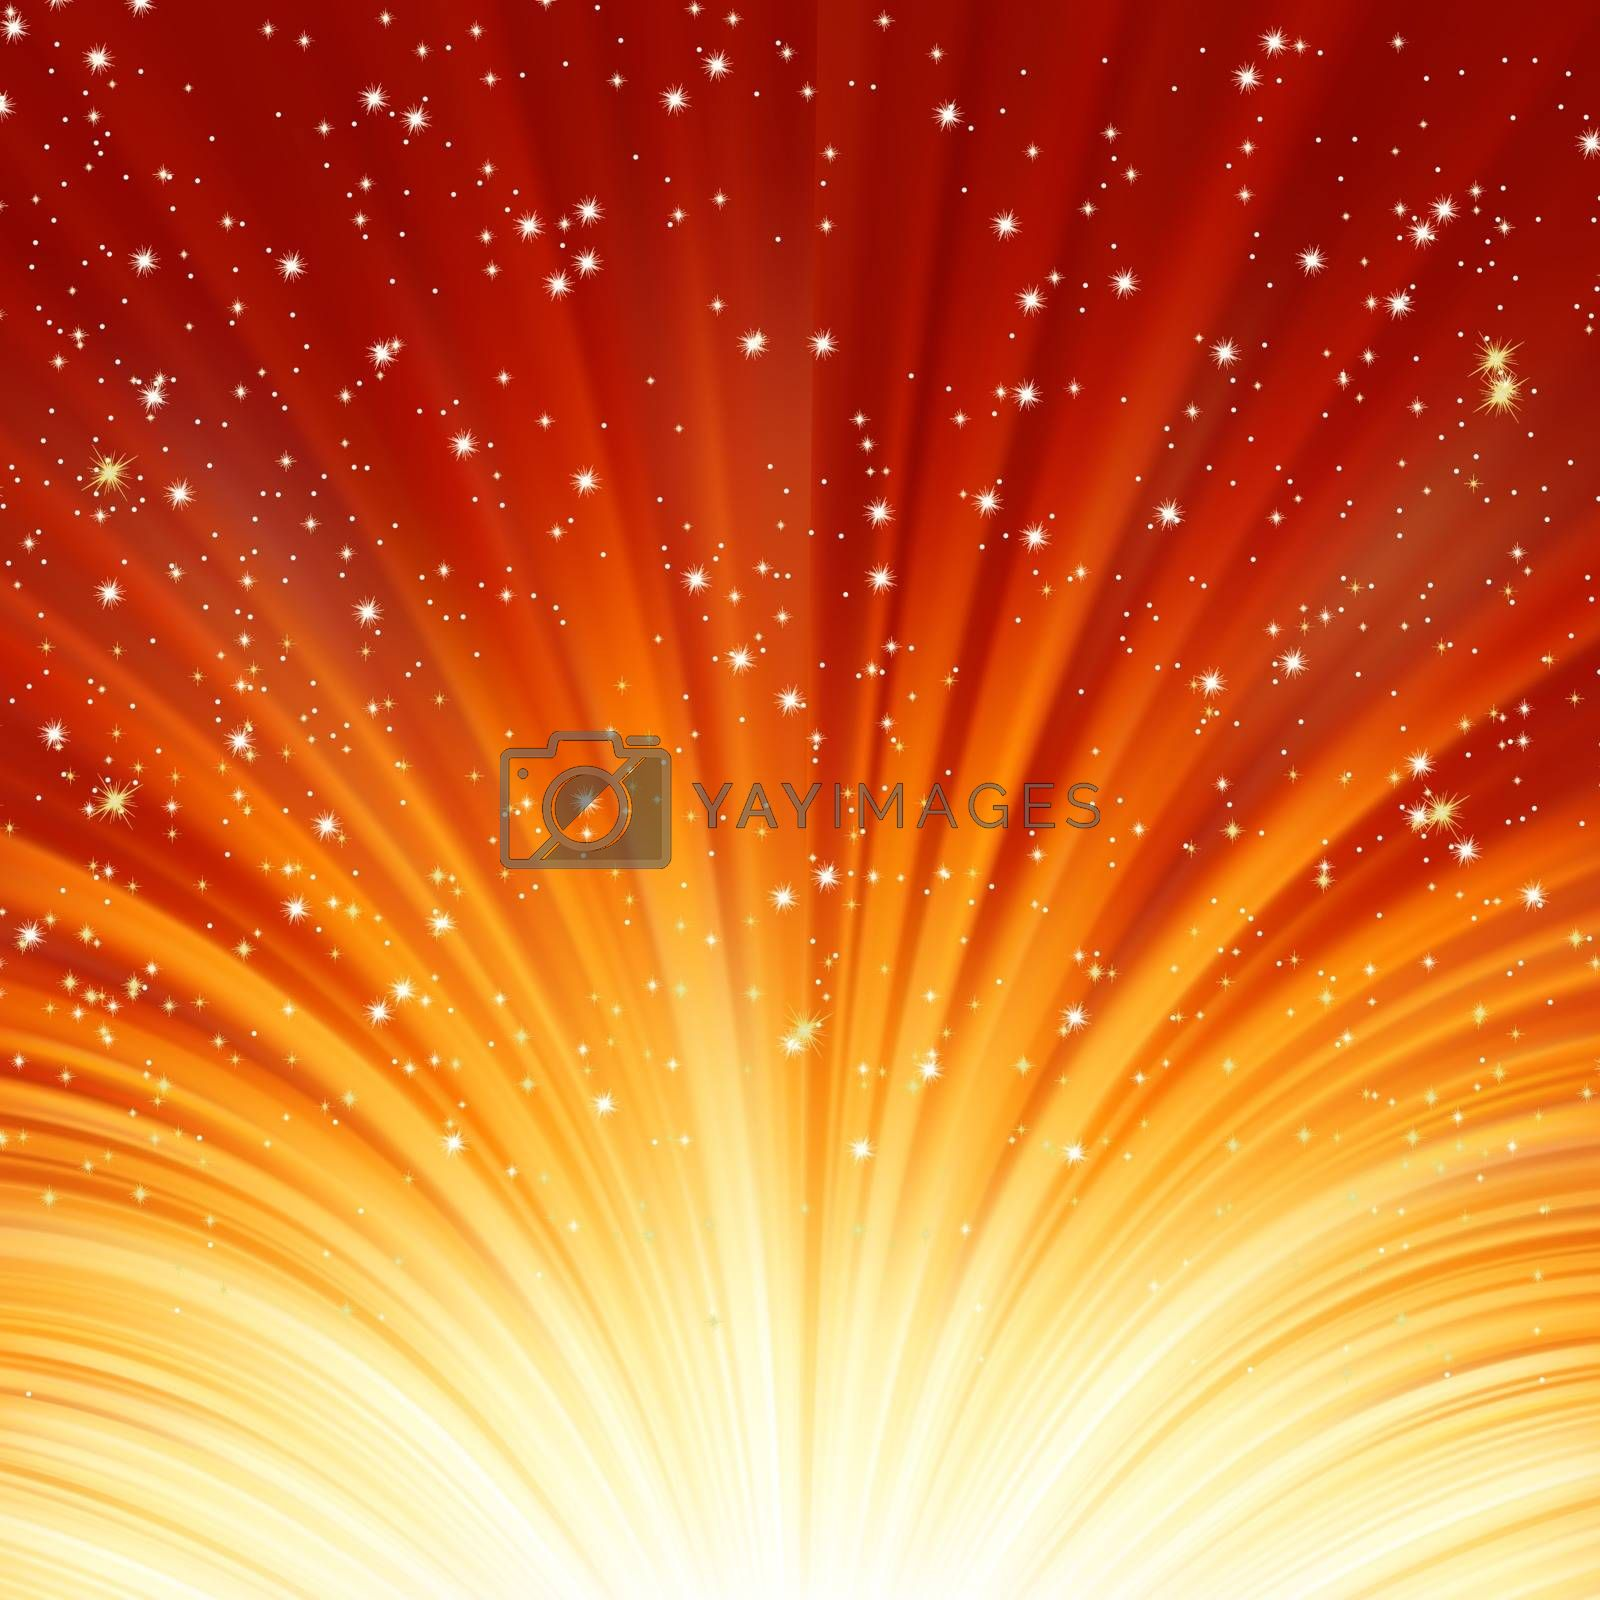 Royalty free image of Abstract fire glow background. EPS 8 by Petrov_Vladimir